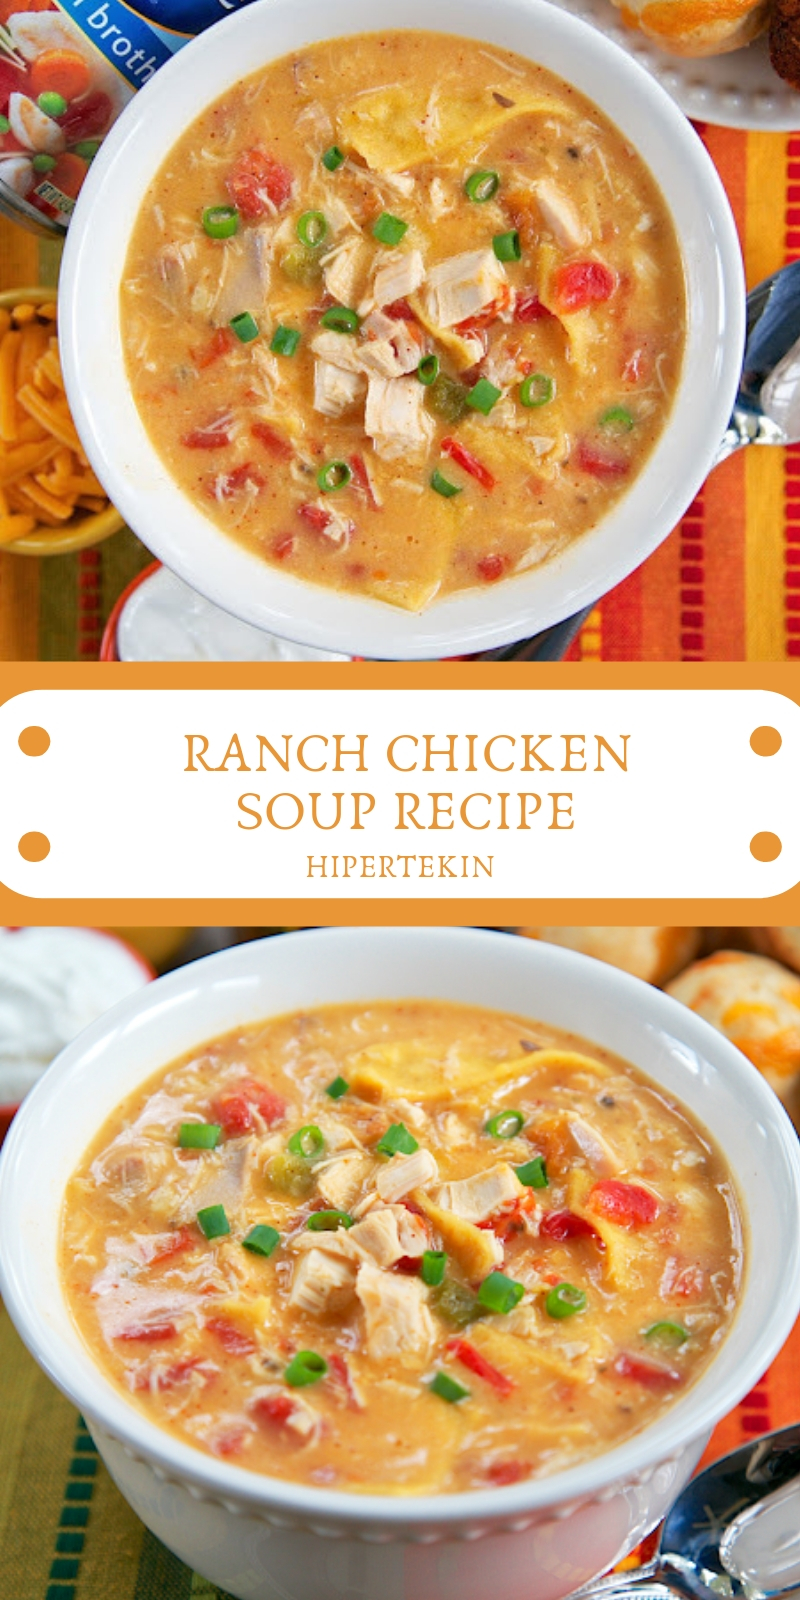 RANCH CHICKEN SOUP RECIPE